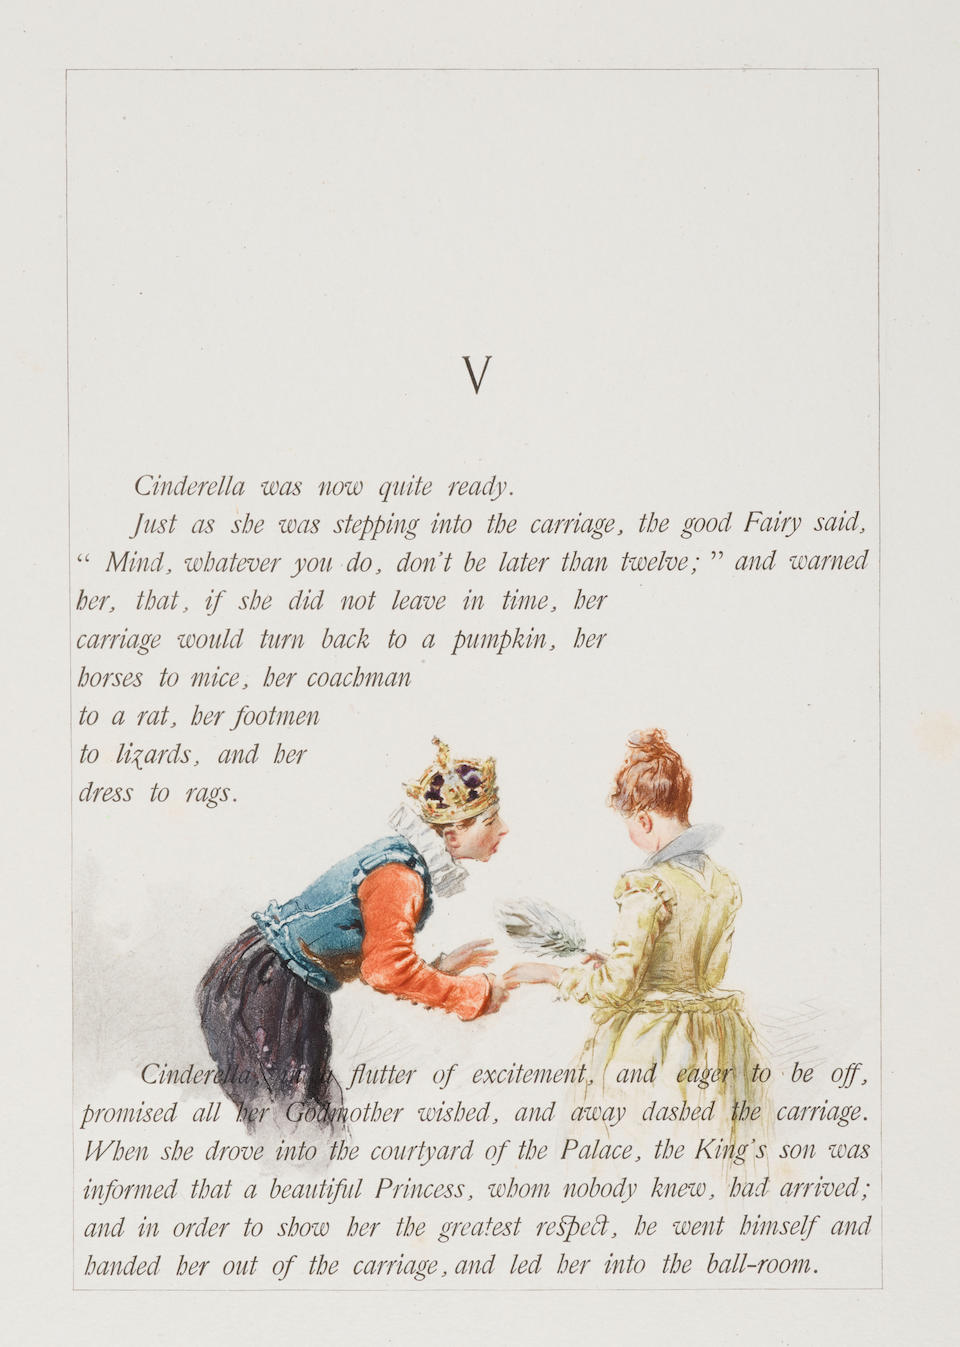 BEAUMONT, EDOUARD DE. 1821-1888.  [PERRAULT, CHARLES. 1628-1703.] Cinderella and the Two Gifts. Asnieres: Boussod Valadon & Co., 1886.